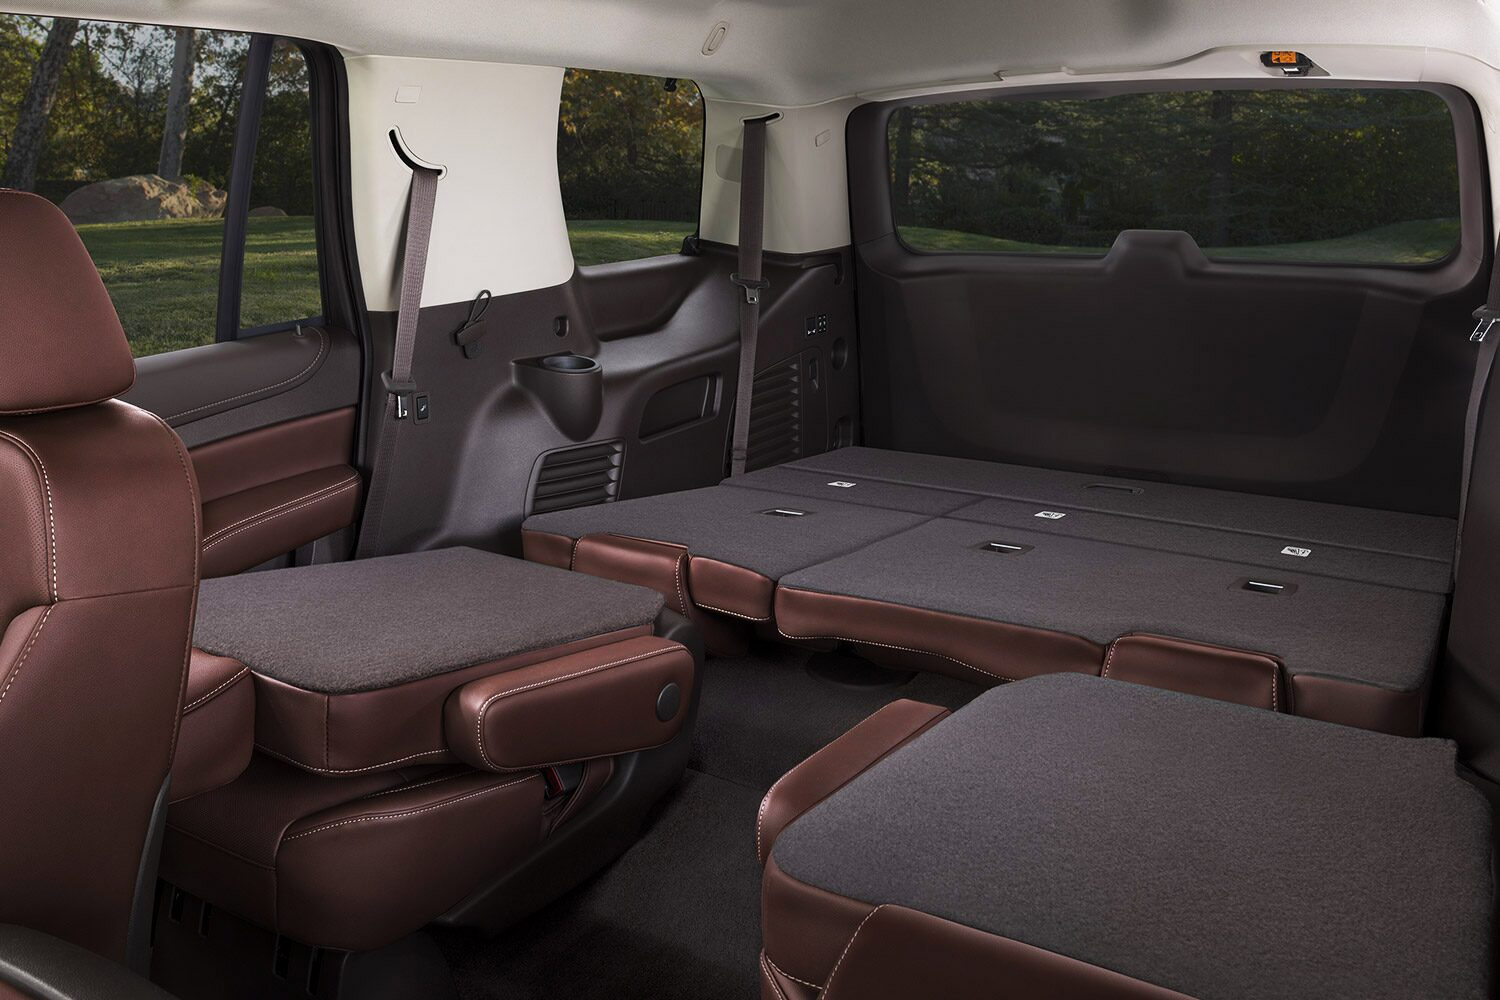 2018 Tahoe SUV Design: Fold Down Seating